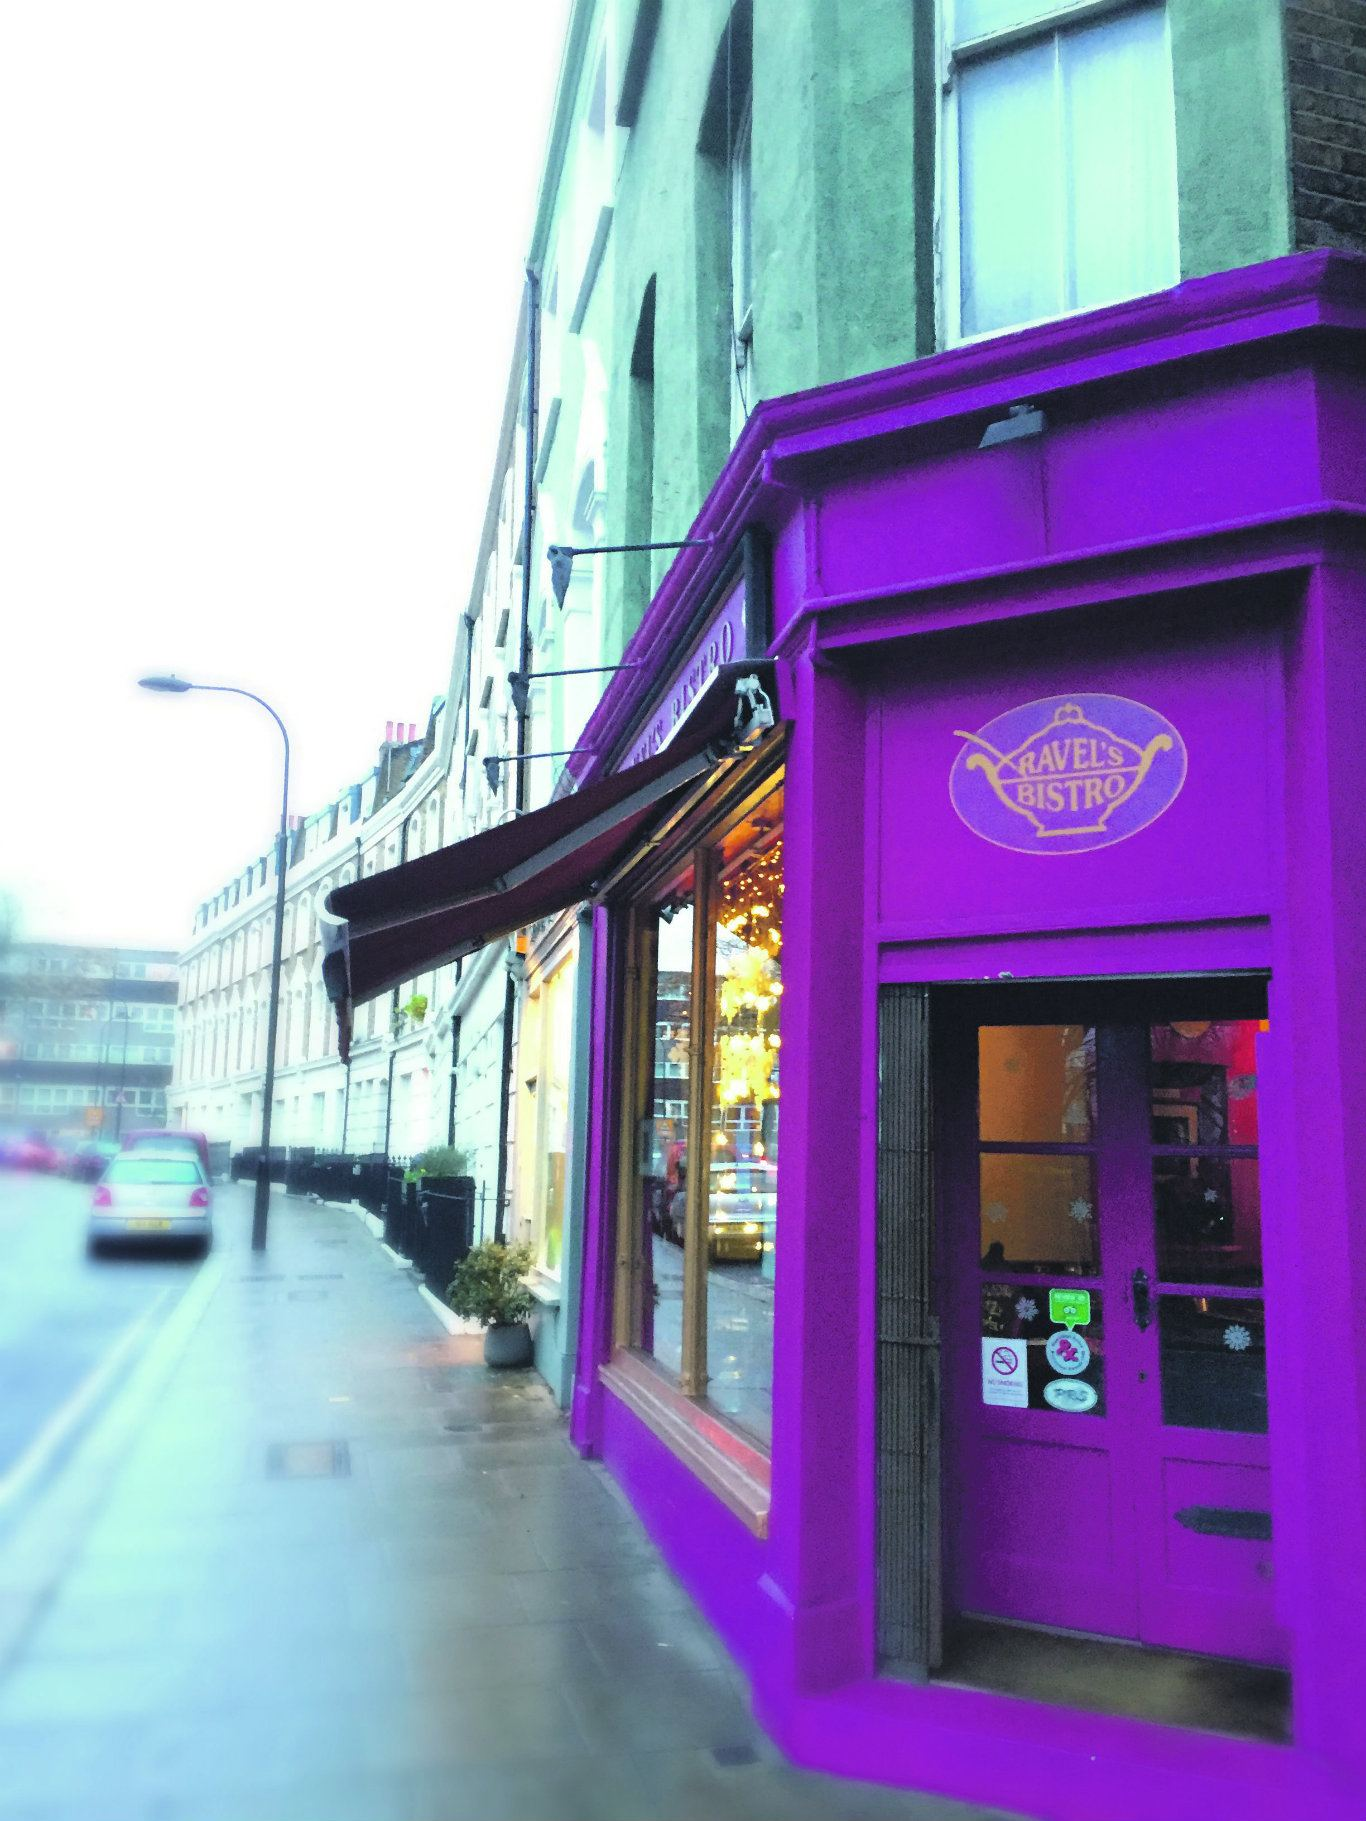 Ravel's Bistro has been on Fleet Road since the 1990s. Photo: SE